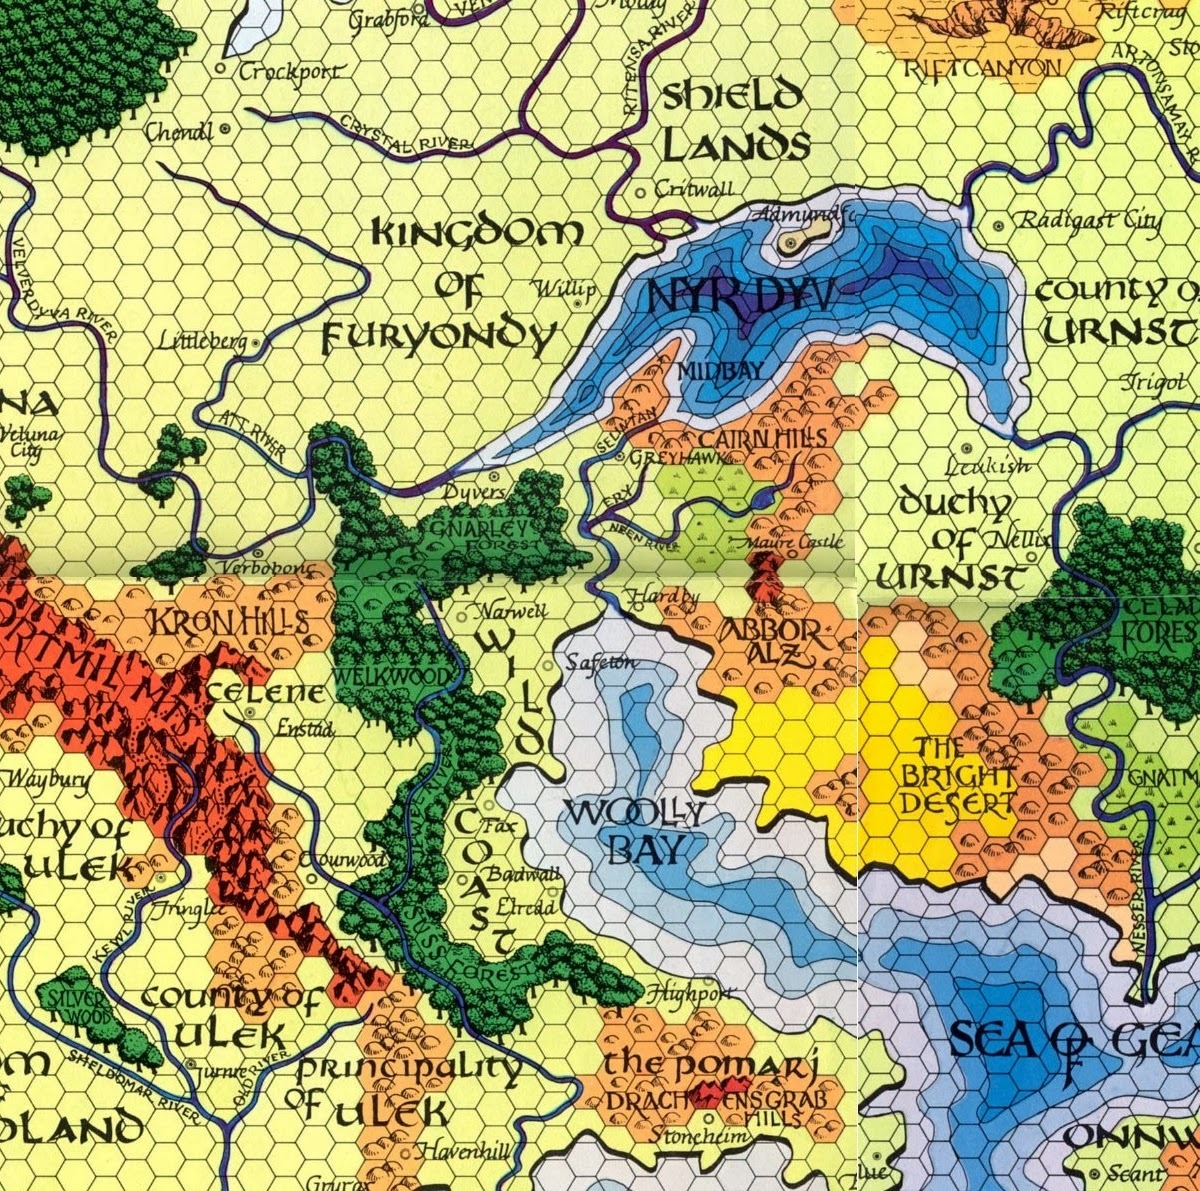 Darlenemapsection greyhawk 1200